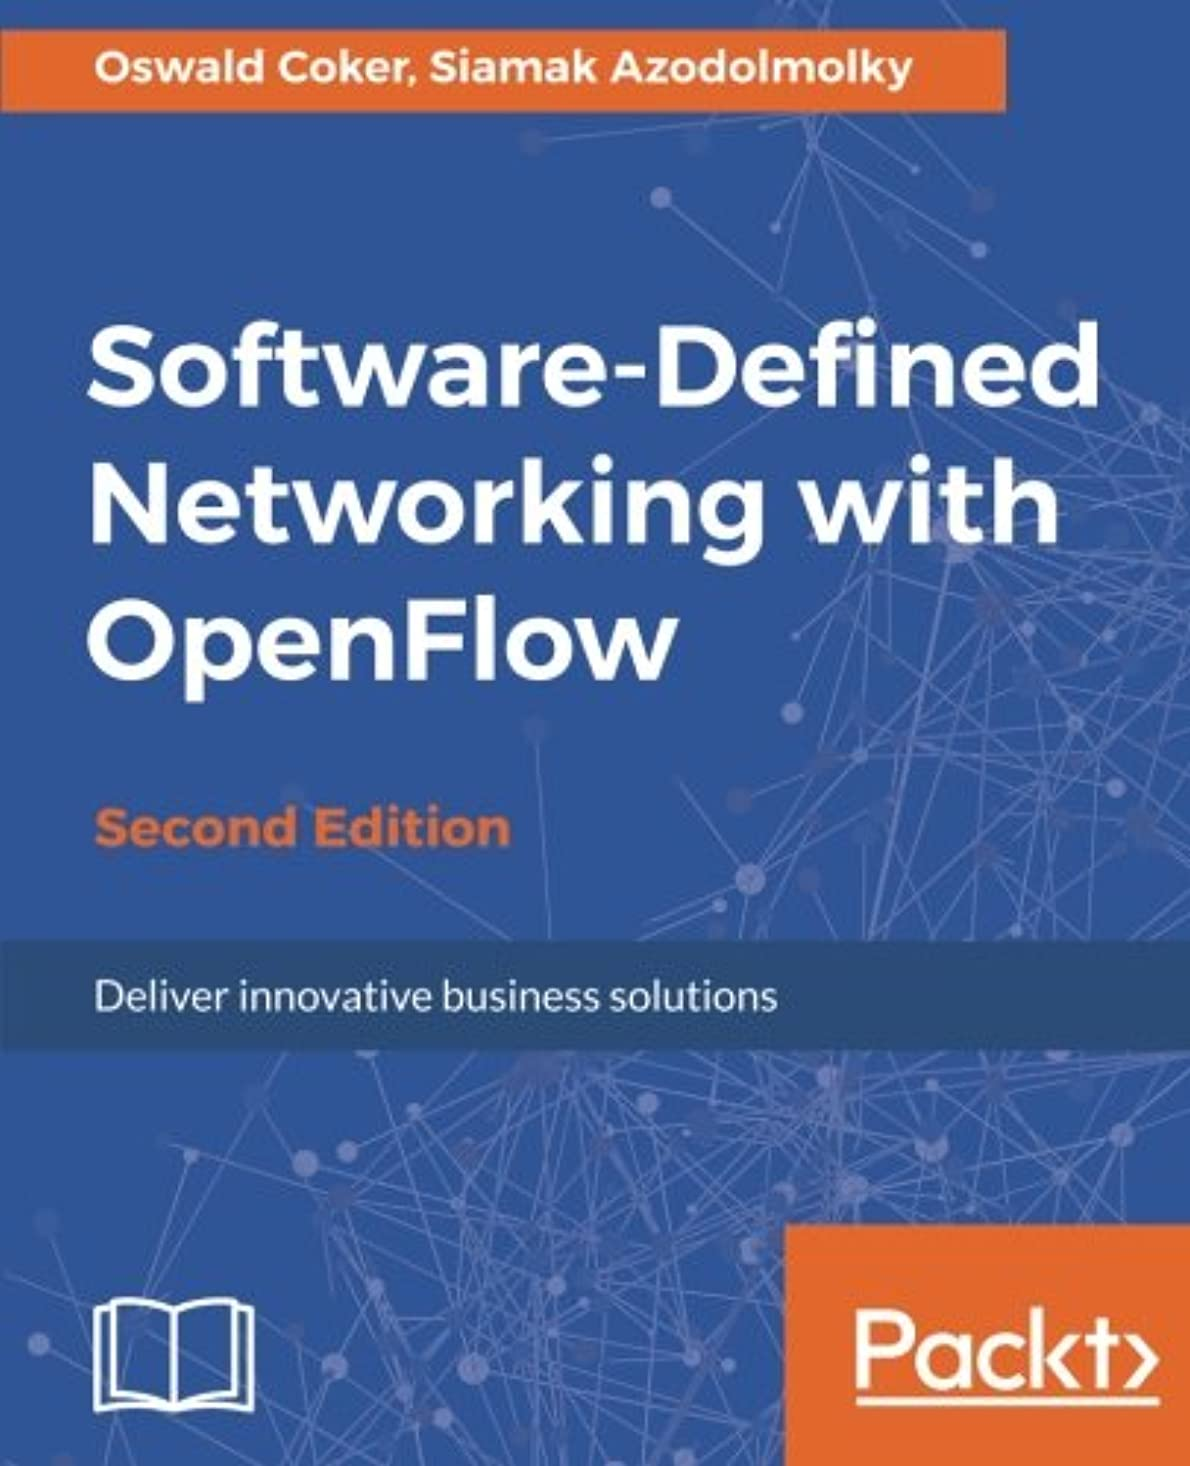 投げる動くグレートバリアリーフSoftware-Defined Networking with Openflow - Second Edition